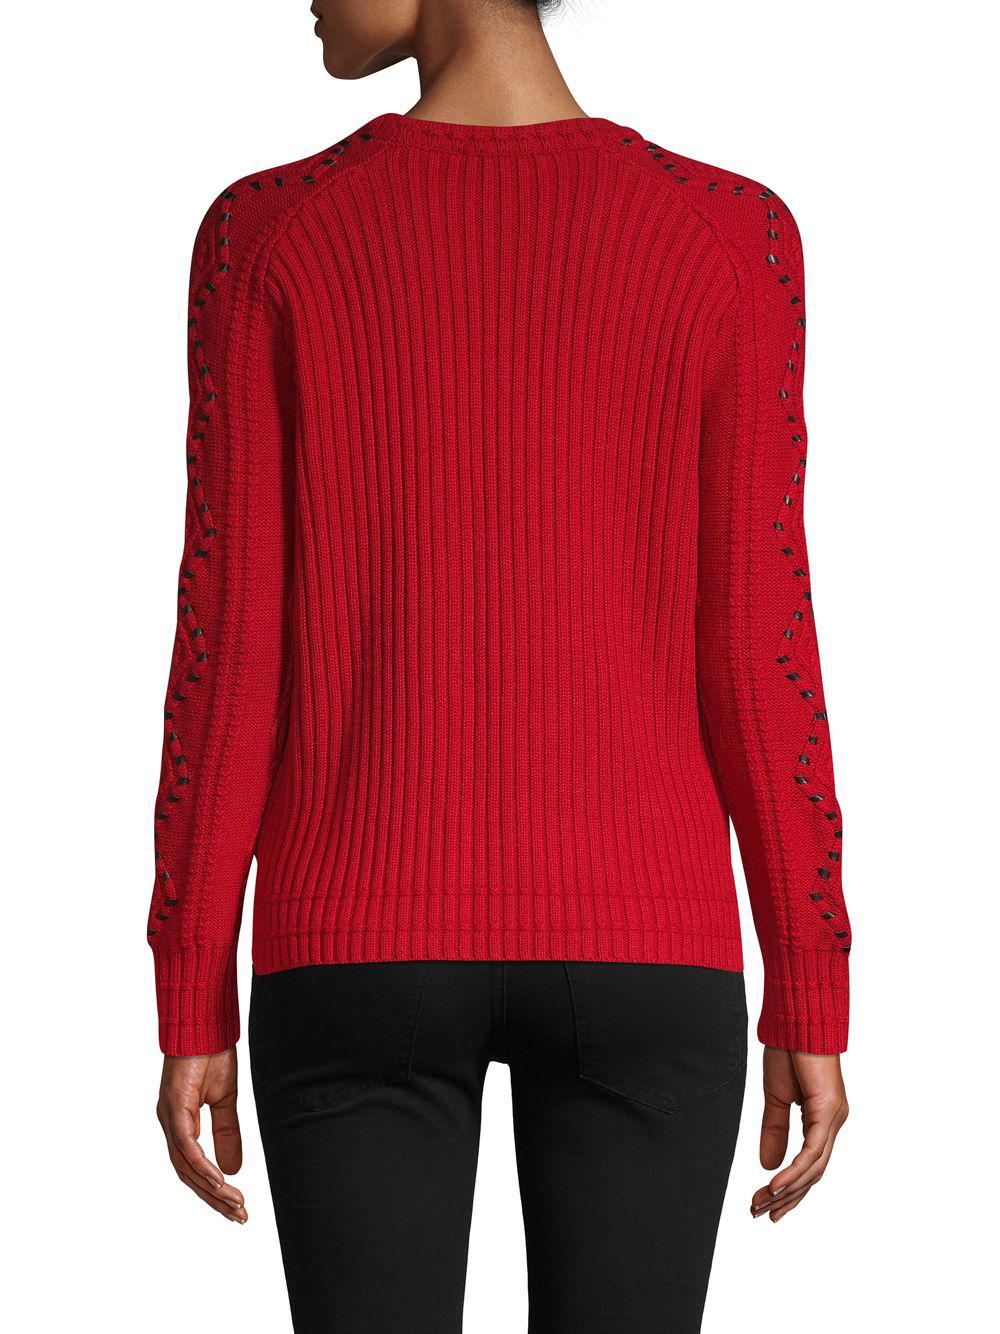 0f377ff0ac Lyst - Maje Faux Leather-trimmed Sweater in Red